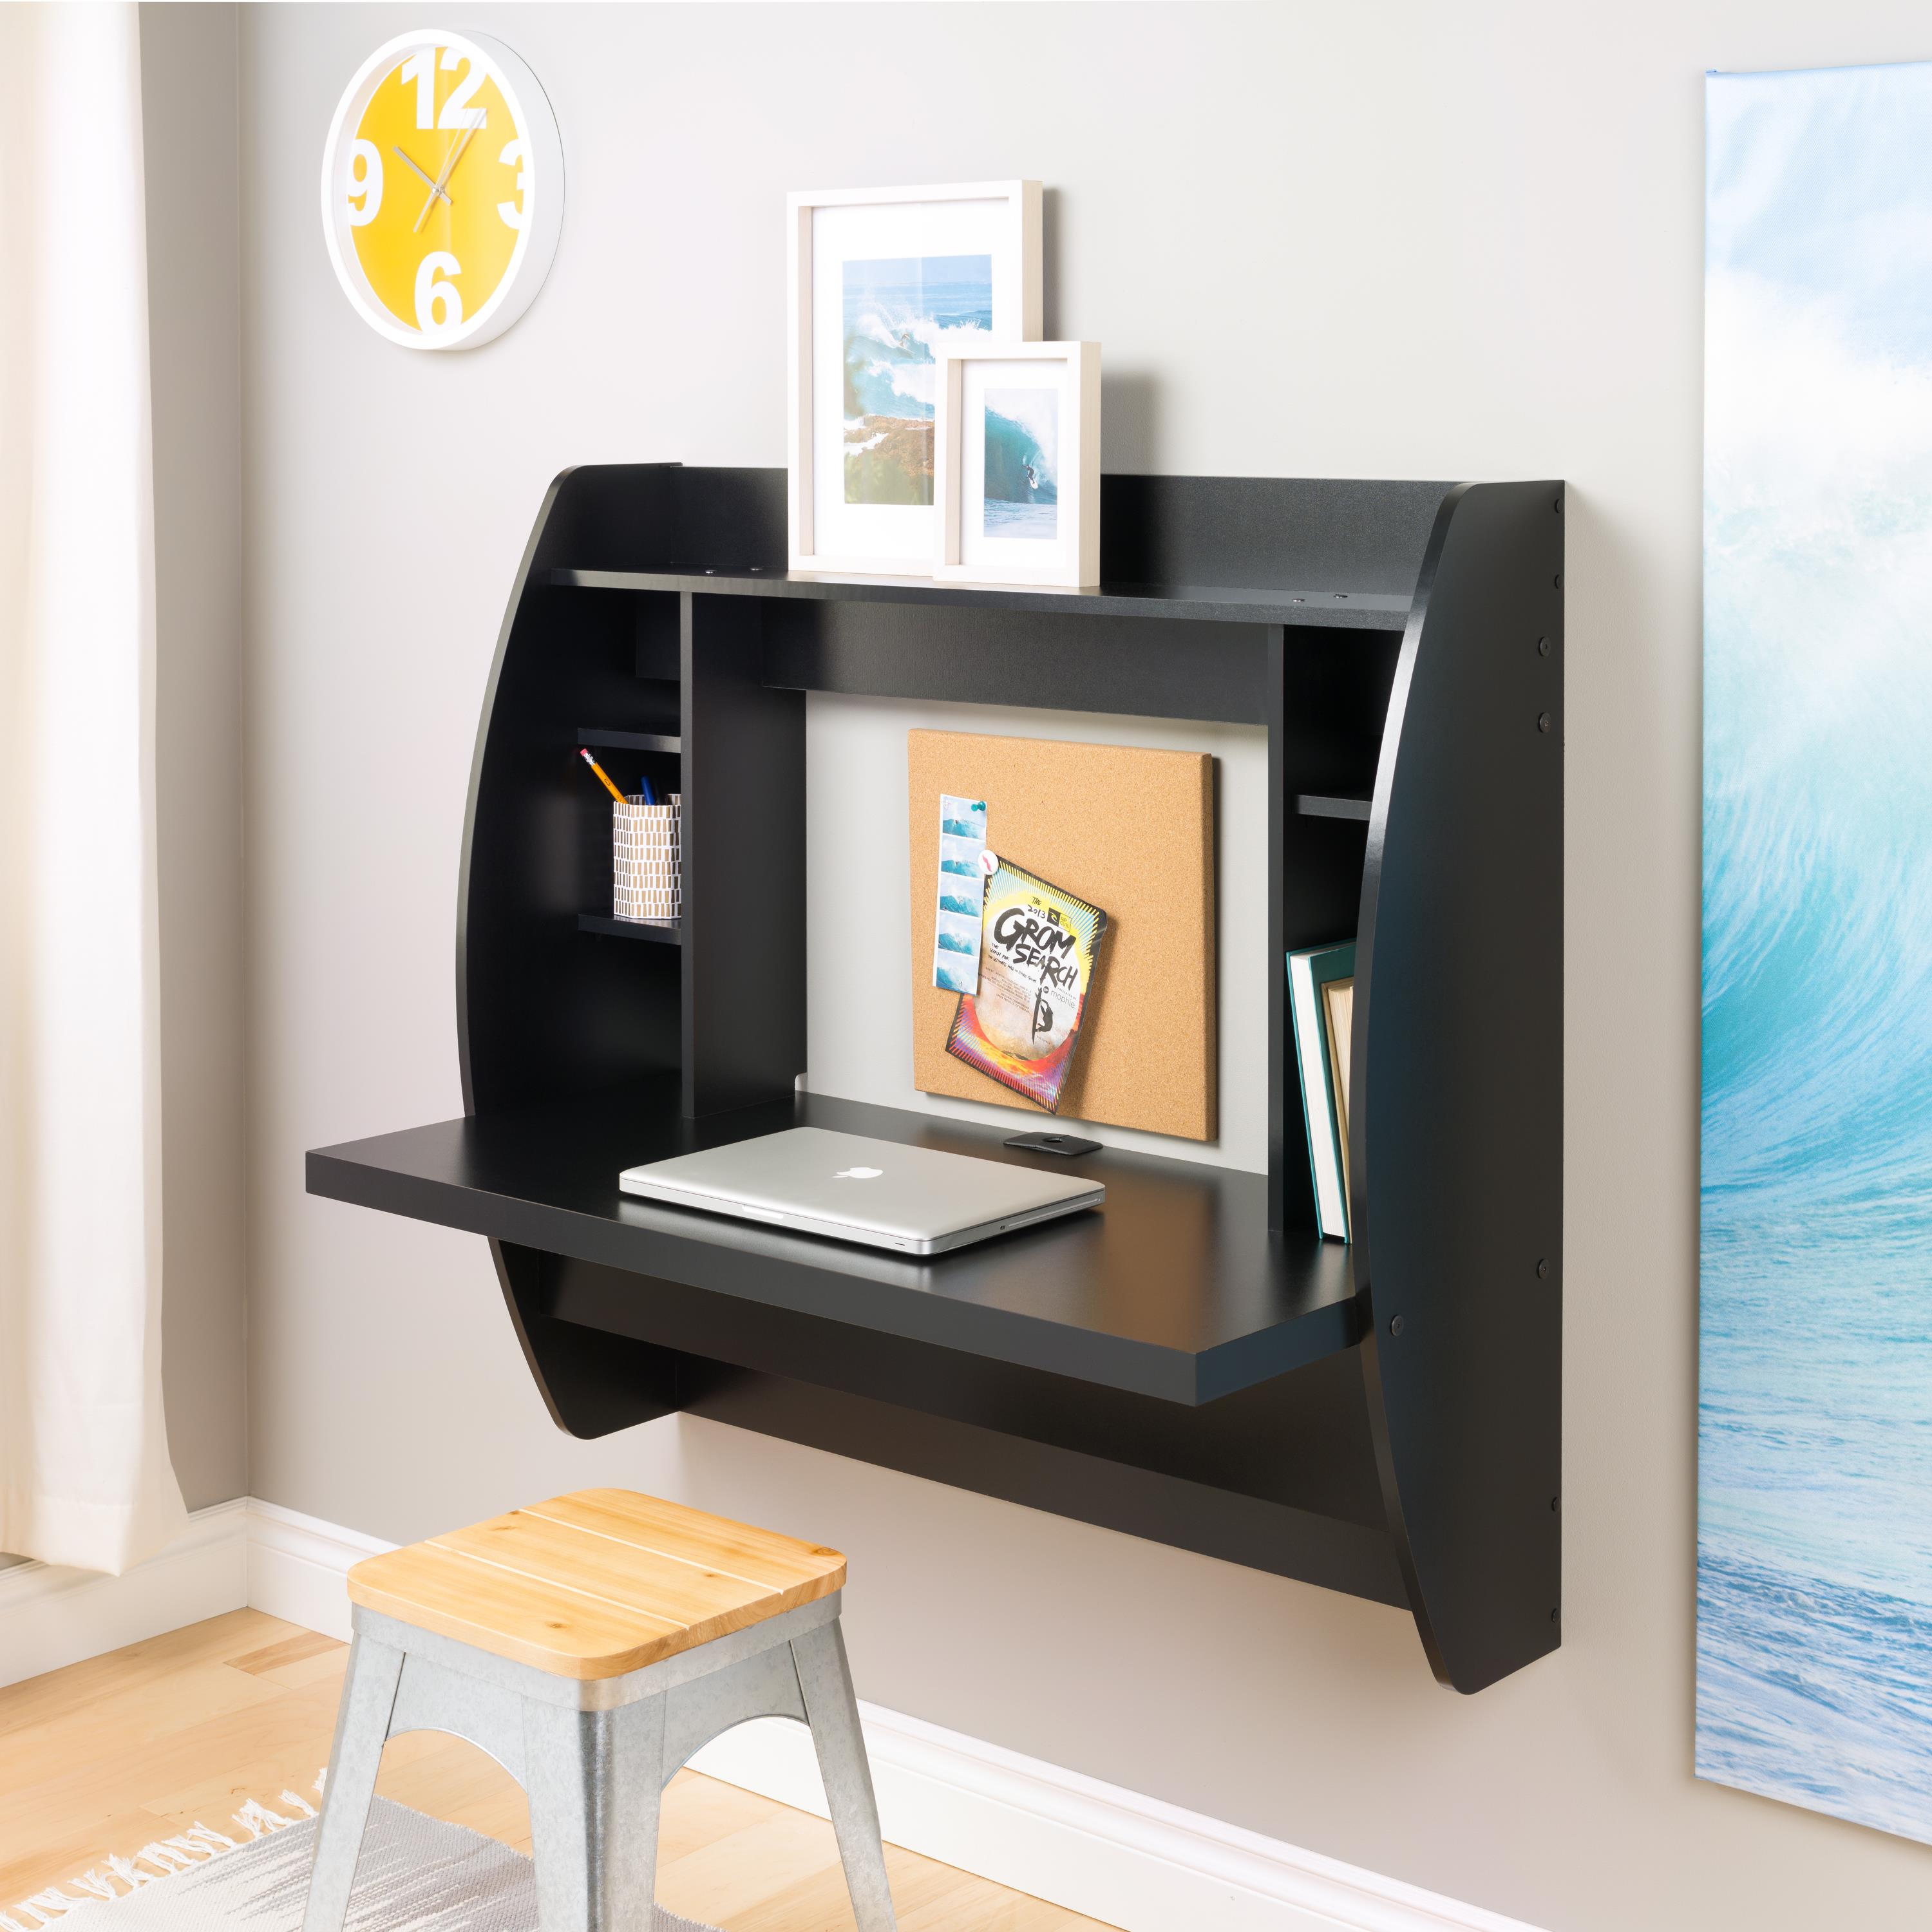 Prepac wall mounted floating desk with storage in black (pre.